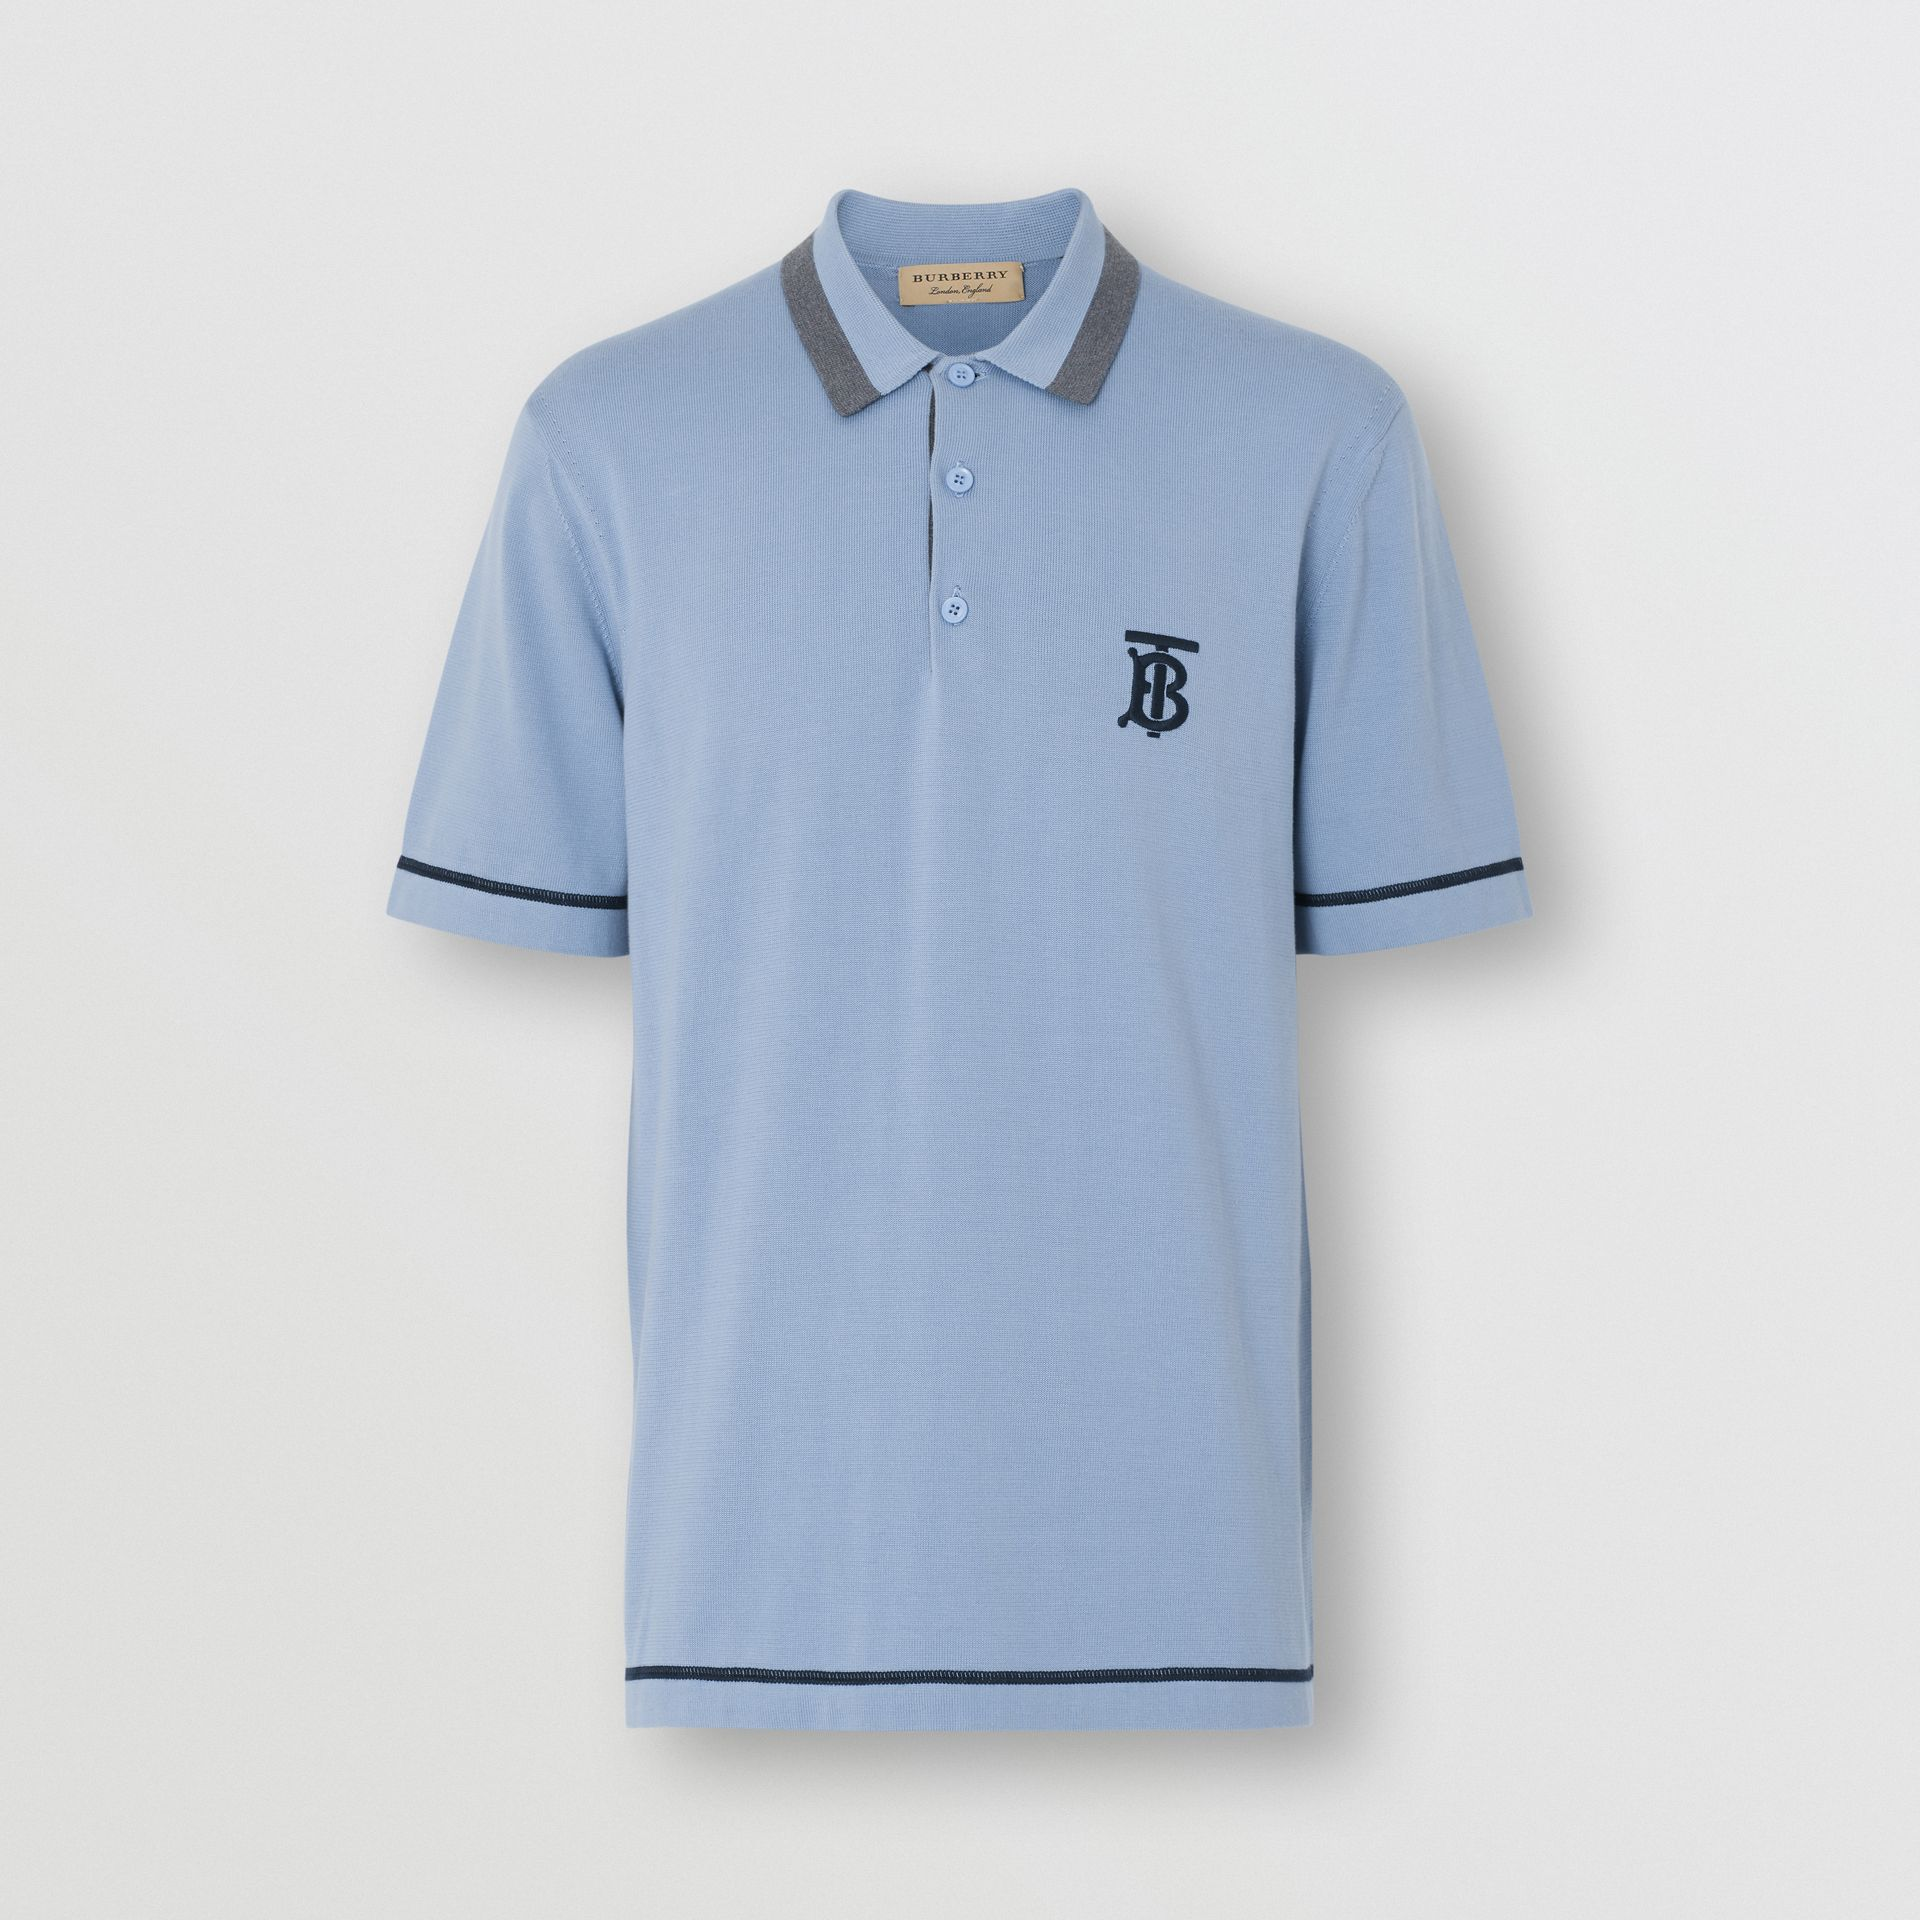 Monogram Motif Tipped Cotton Polo Shirt in Baby Blue - Men | Burberry United Kingdom - gallery image 3